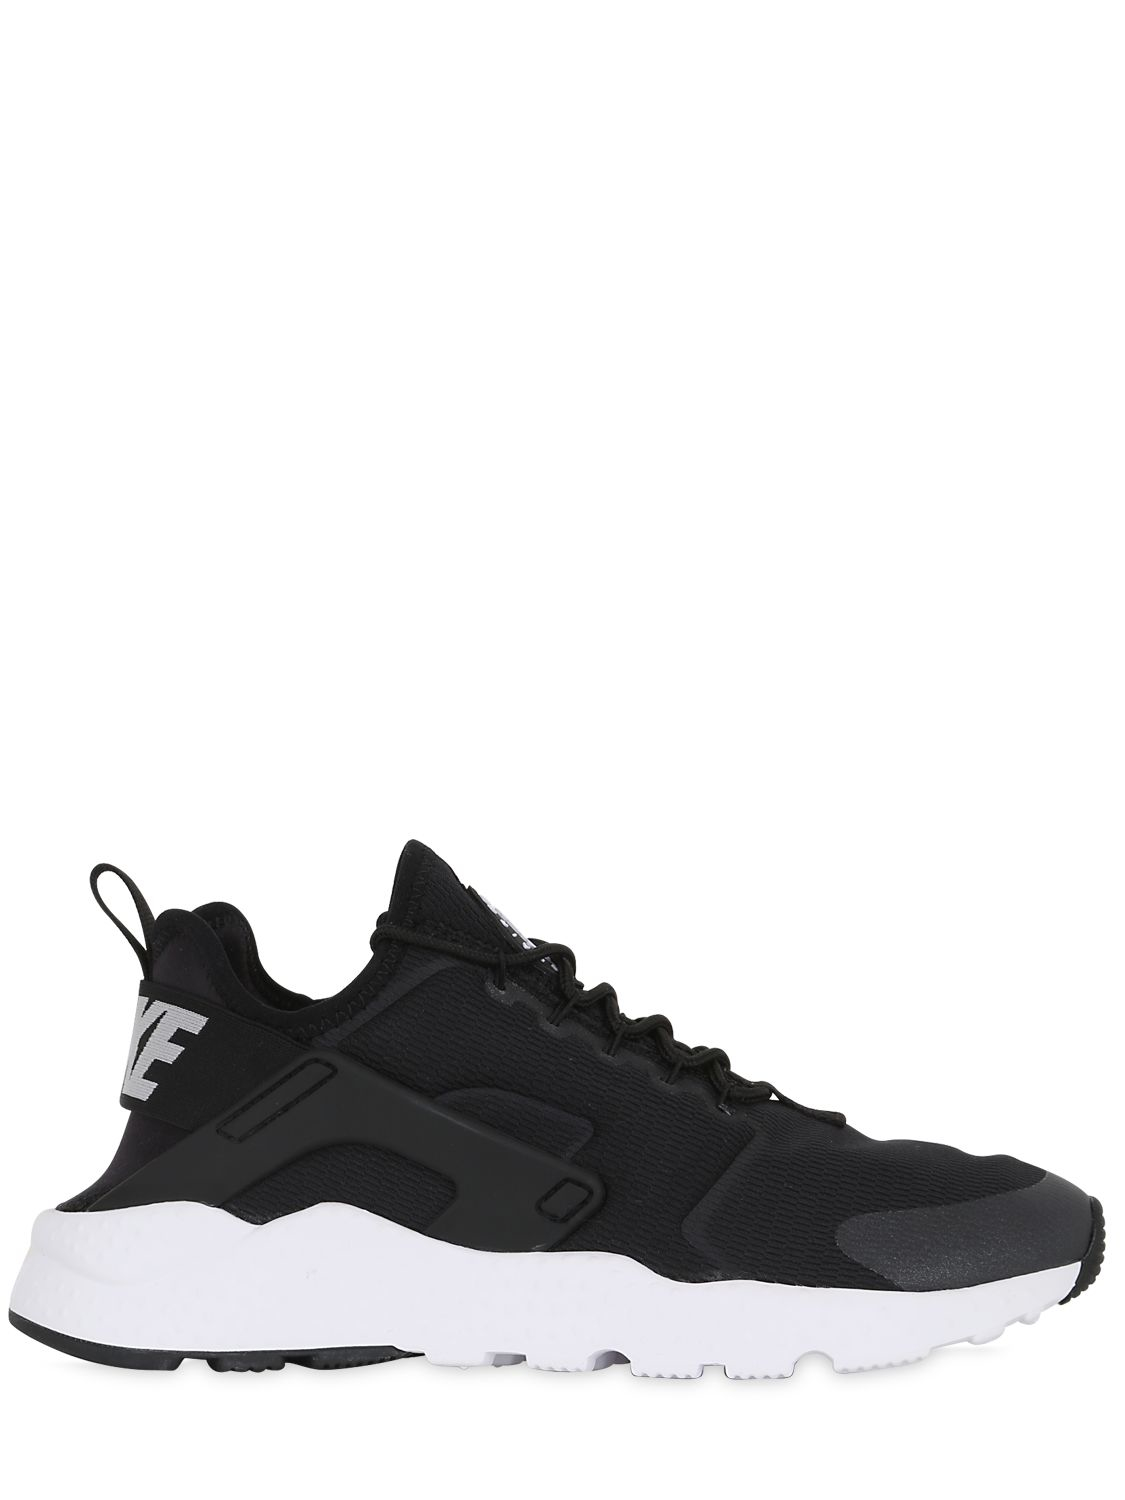 501d63bac2e9 ... new arrivals lyst nike air huarache run ultra mesh sneakers in black  for men fbb8e 16b44